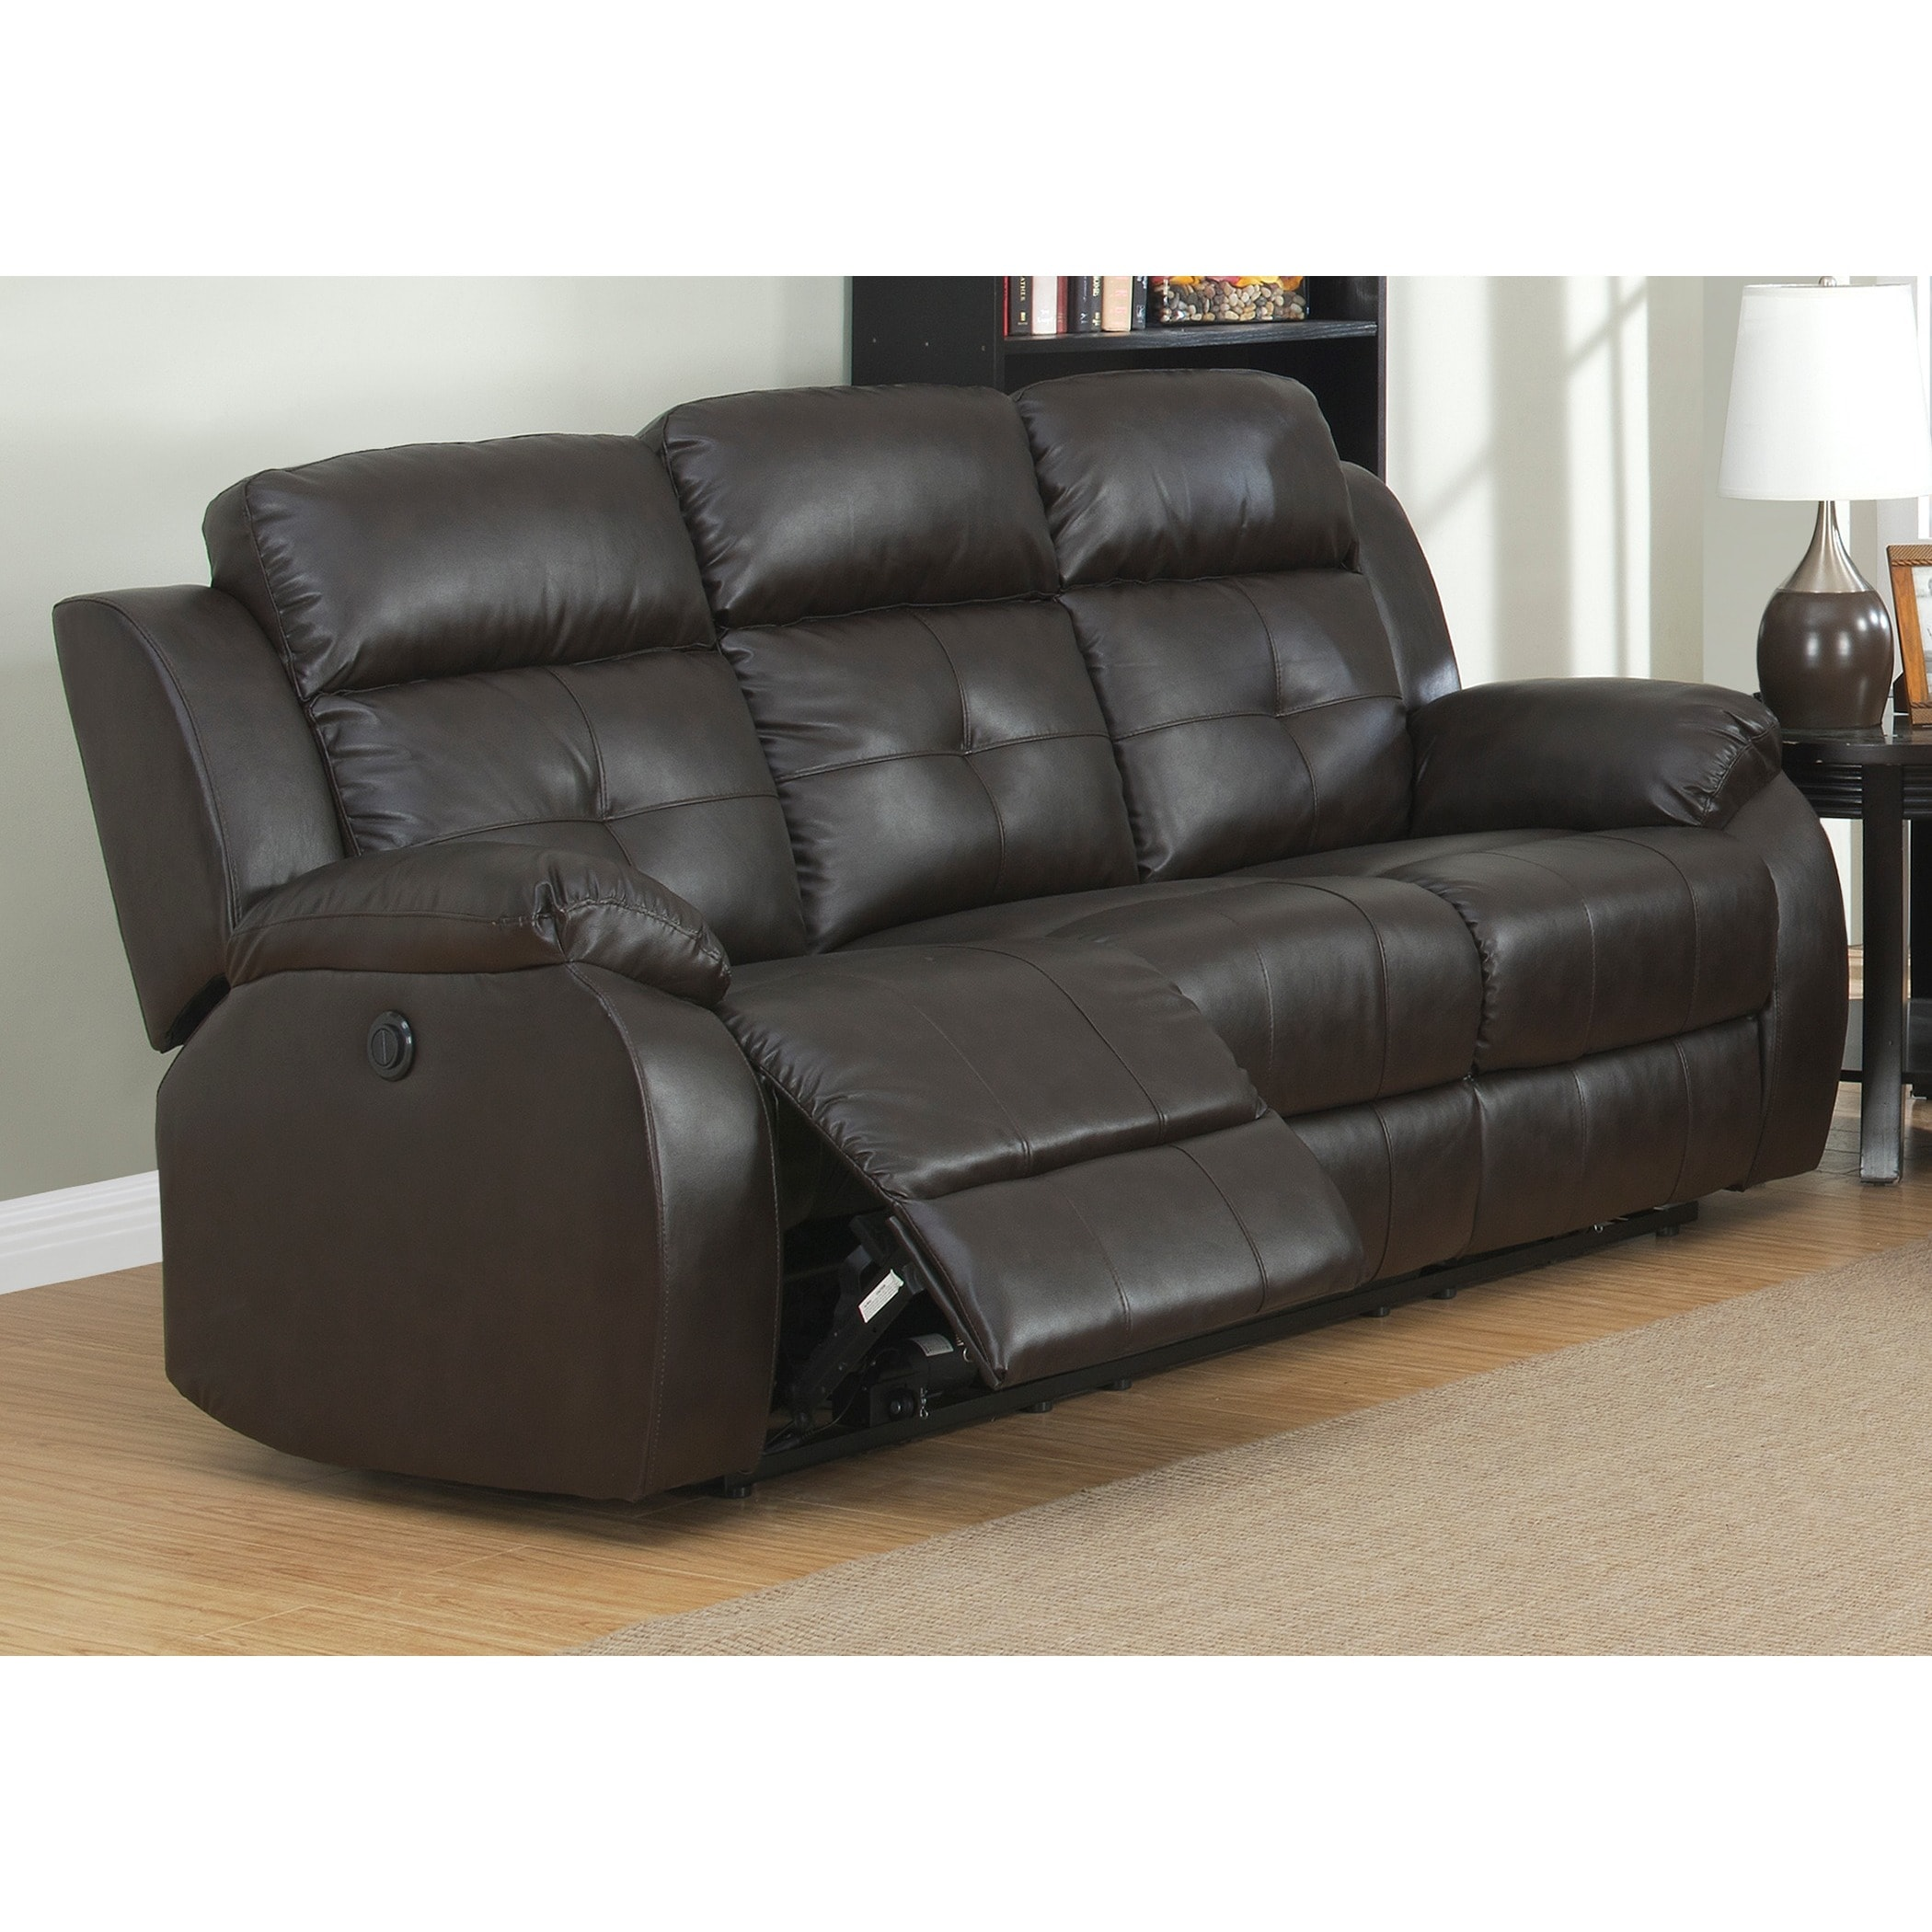 sofa design local reclining recliner size full repair of localelectric electric amazing